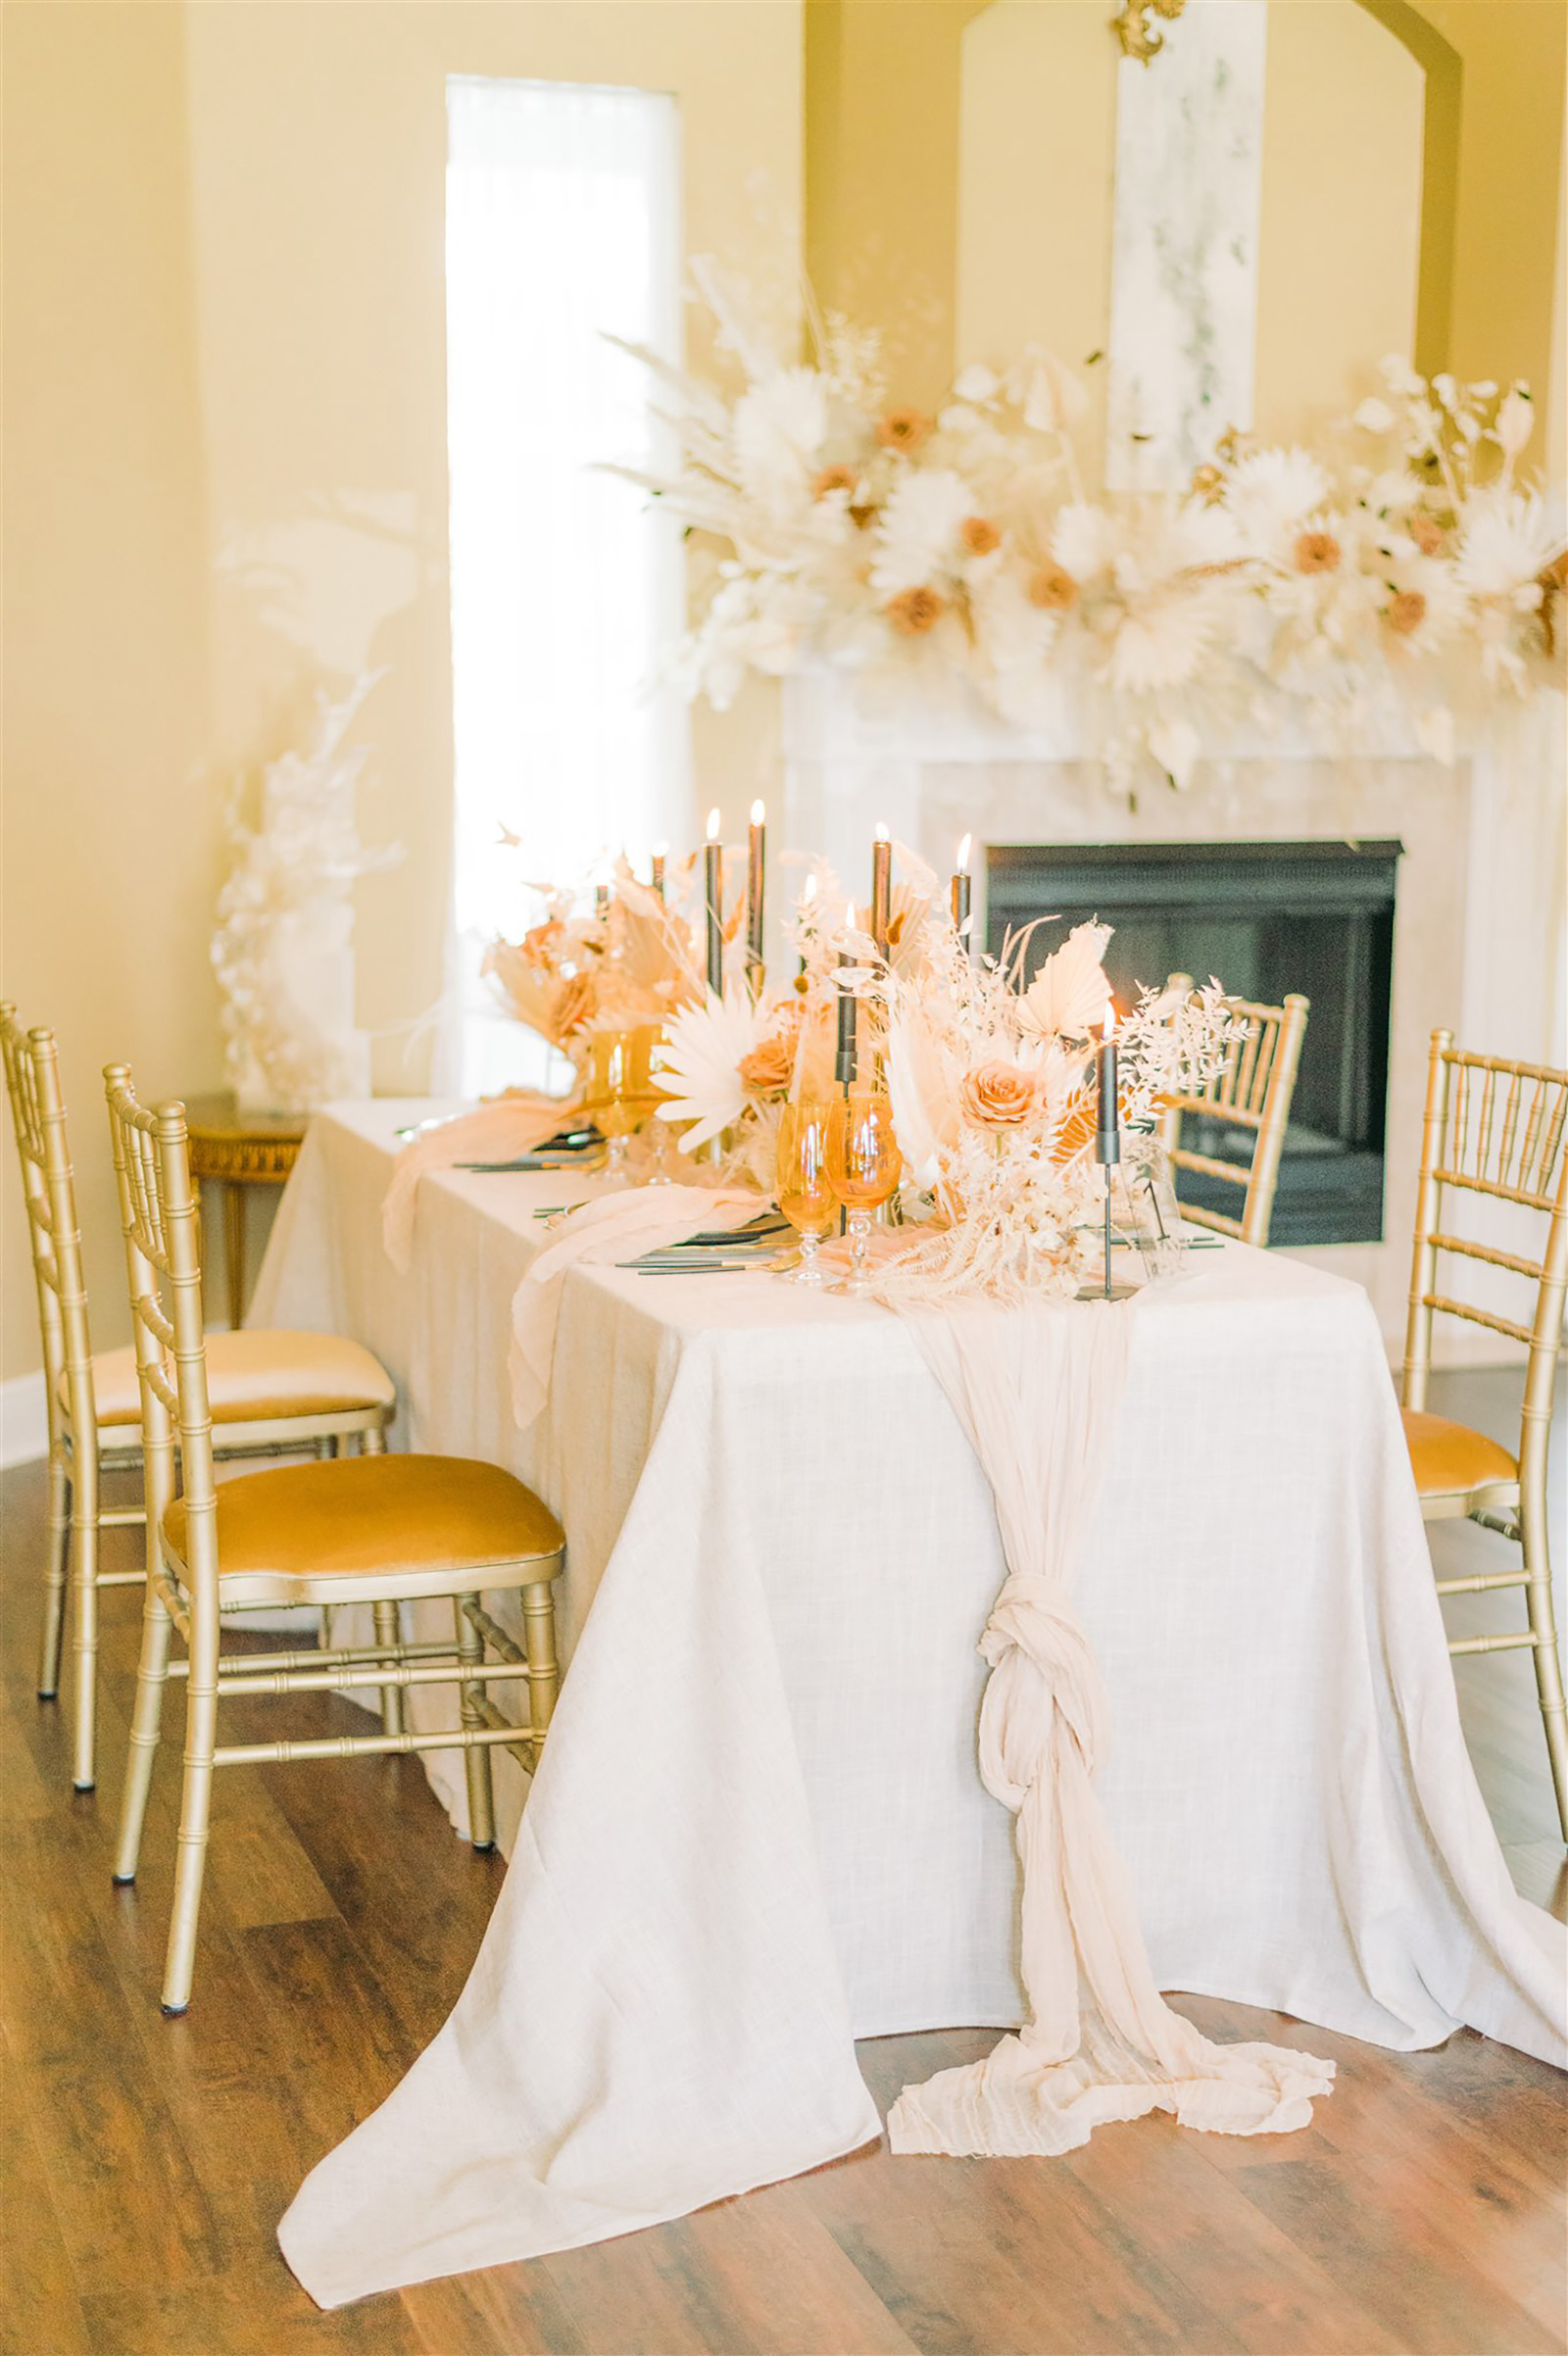 Trendy and Modern Boho Wedding Reception Decor, Long Table with White Tablecloth, Gold Chiavari Chairs with Beige Cushions, White Floral Preserved Flowers and Foliage, Ivory Table Runner, Candlesticks | Tampa Bay Wedding Planner, Designer, Florist John Campbell Weddings | Tabletop Rentals Kate Ryan Event Rentals